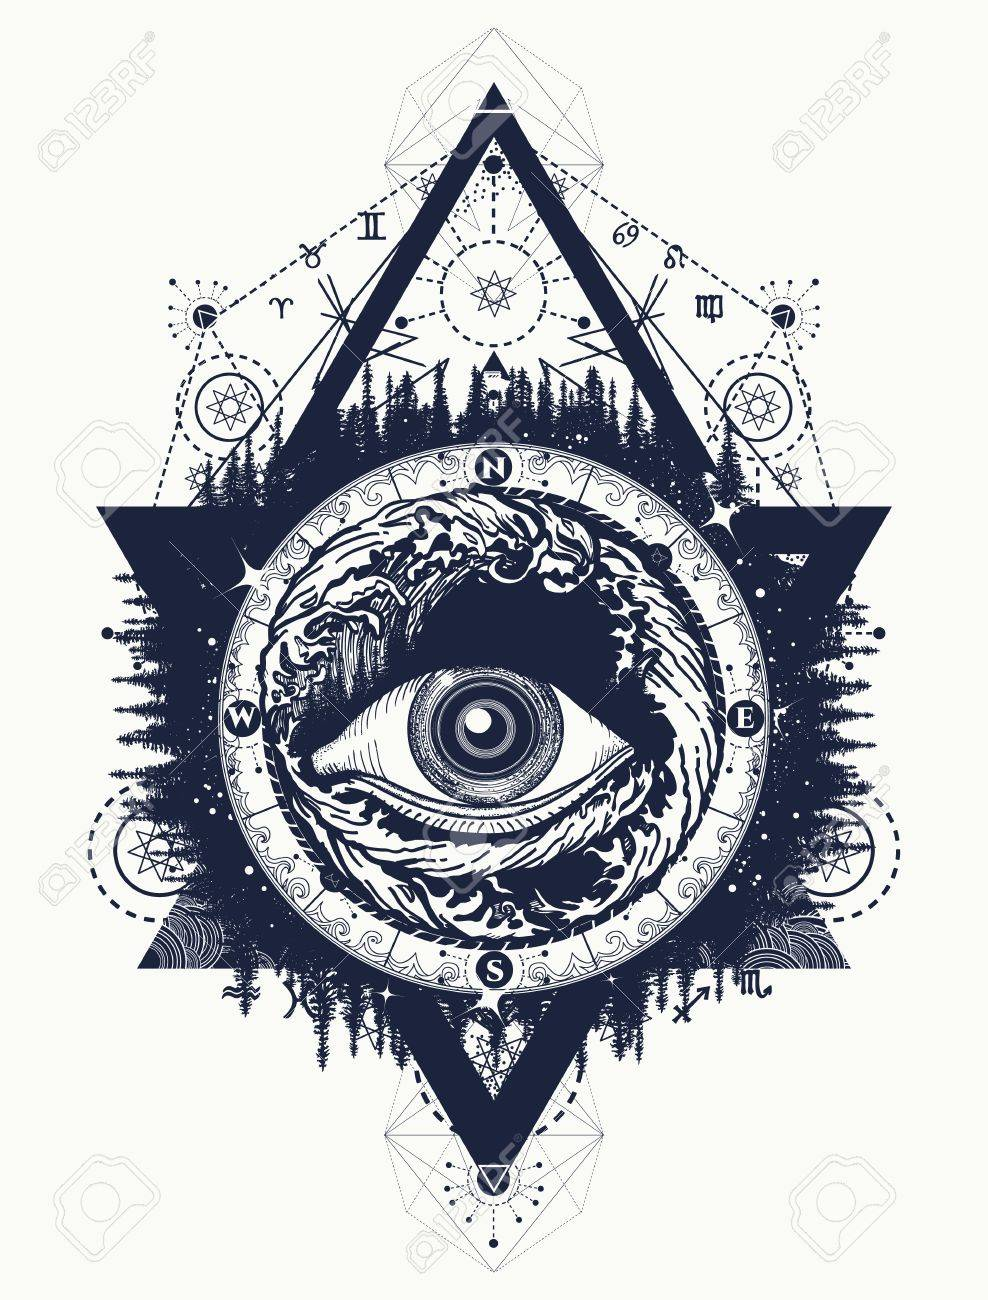 All Seeing Eye Tattoo Tourism In A Mystical Style Vector Eye